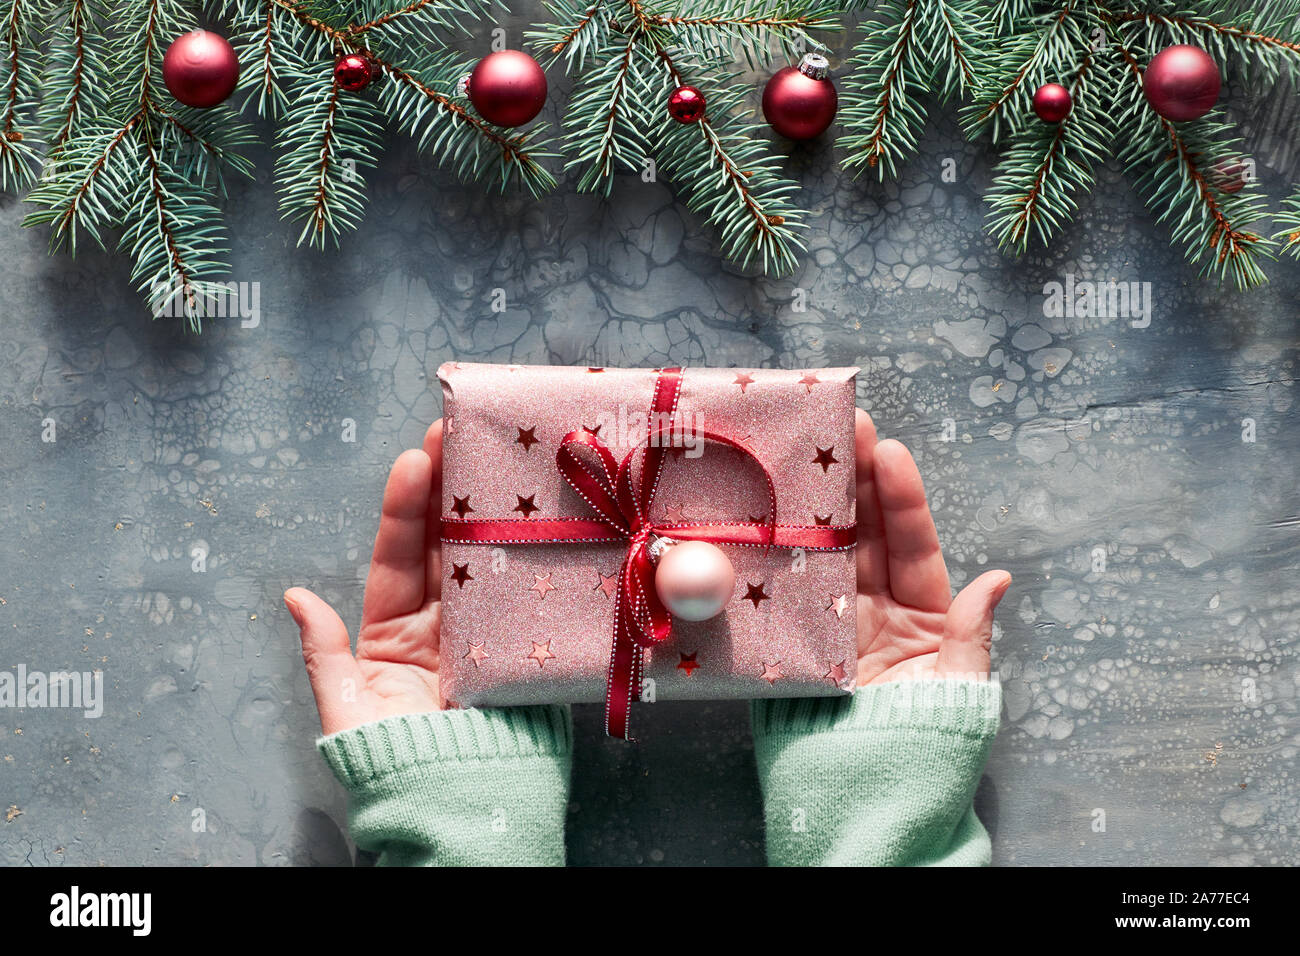 Creative Christmas Flat Lay On Grey Acrylic Fluid Art Board Female Hands In Green Mint Sweater Holding Gift Box Wrapped In Pink Paper With Red Ribbon Stock Photo Alamy